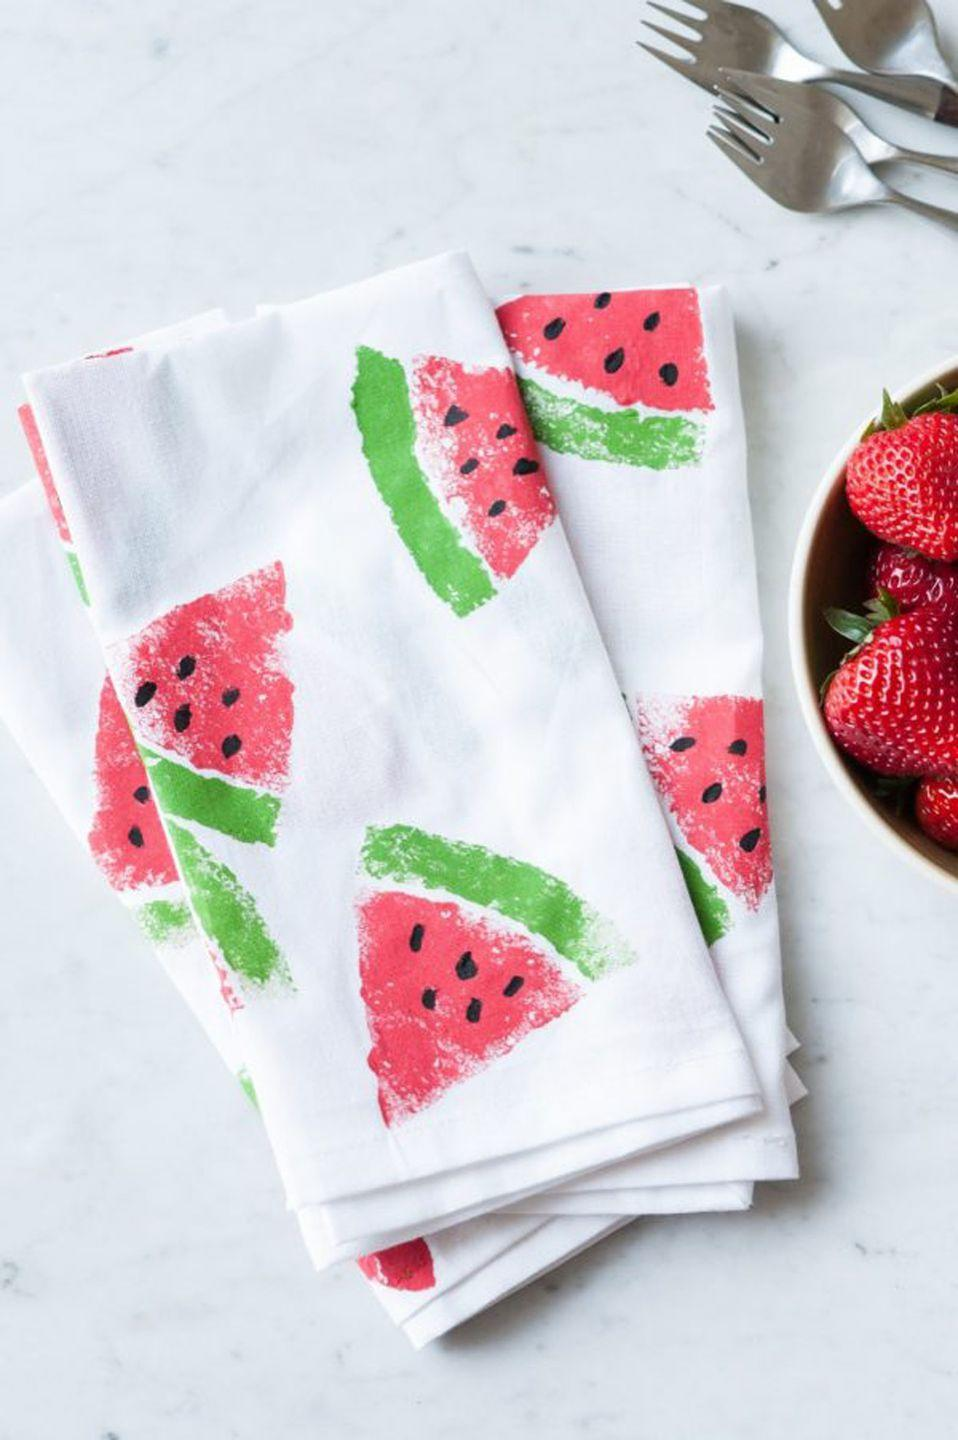 "<p>All it takes is a sponge and paint to make these pretty napkins you can use on Mother's Day.</p><p><strong>Get the tutorial at <a href=""https://thesweetestoccasion.com/2015/07/diy-watermelon-print-napkins/"" rel=""nofollow noopener"" target=""_blank"" data-ylk=""slk:The Sweetest Occasion"" class=""link rapid-noclick-resp"">The Sweetest Occasion</a>.</strong></p><p><a class=""link rapid-noclick-resp"" href=""https://www.amazon.com/Utopia-Kitchen-Flour-Towels-Cotton/dp/B00XK69NRW/ref=sxin_7?tag=syn-yahoo-20&ascsubtag=%5Bartid%7C10050.g.4233%5Bsrc%7Cyahoo-us"" rel=""nofollow noopener"" target=""_blank"" data-ylk=""slk:SHOP TEA TOWELS"">SHOP TEA TOWELS</a></p>"